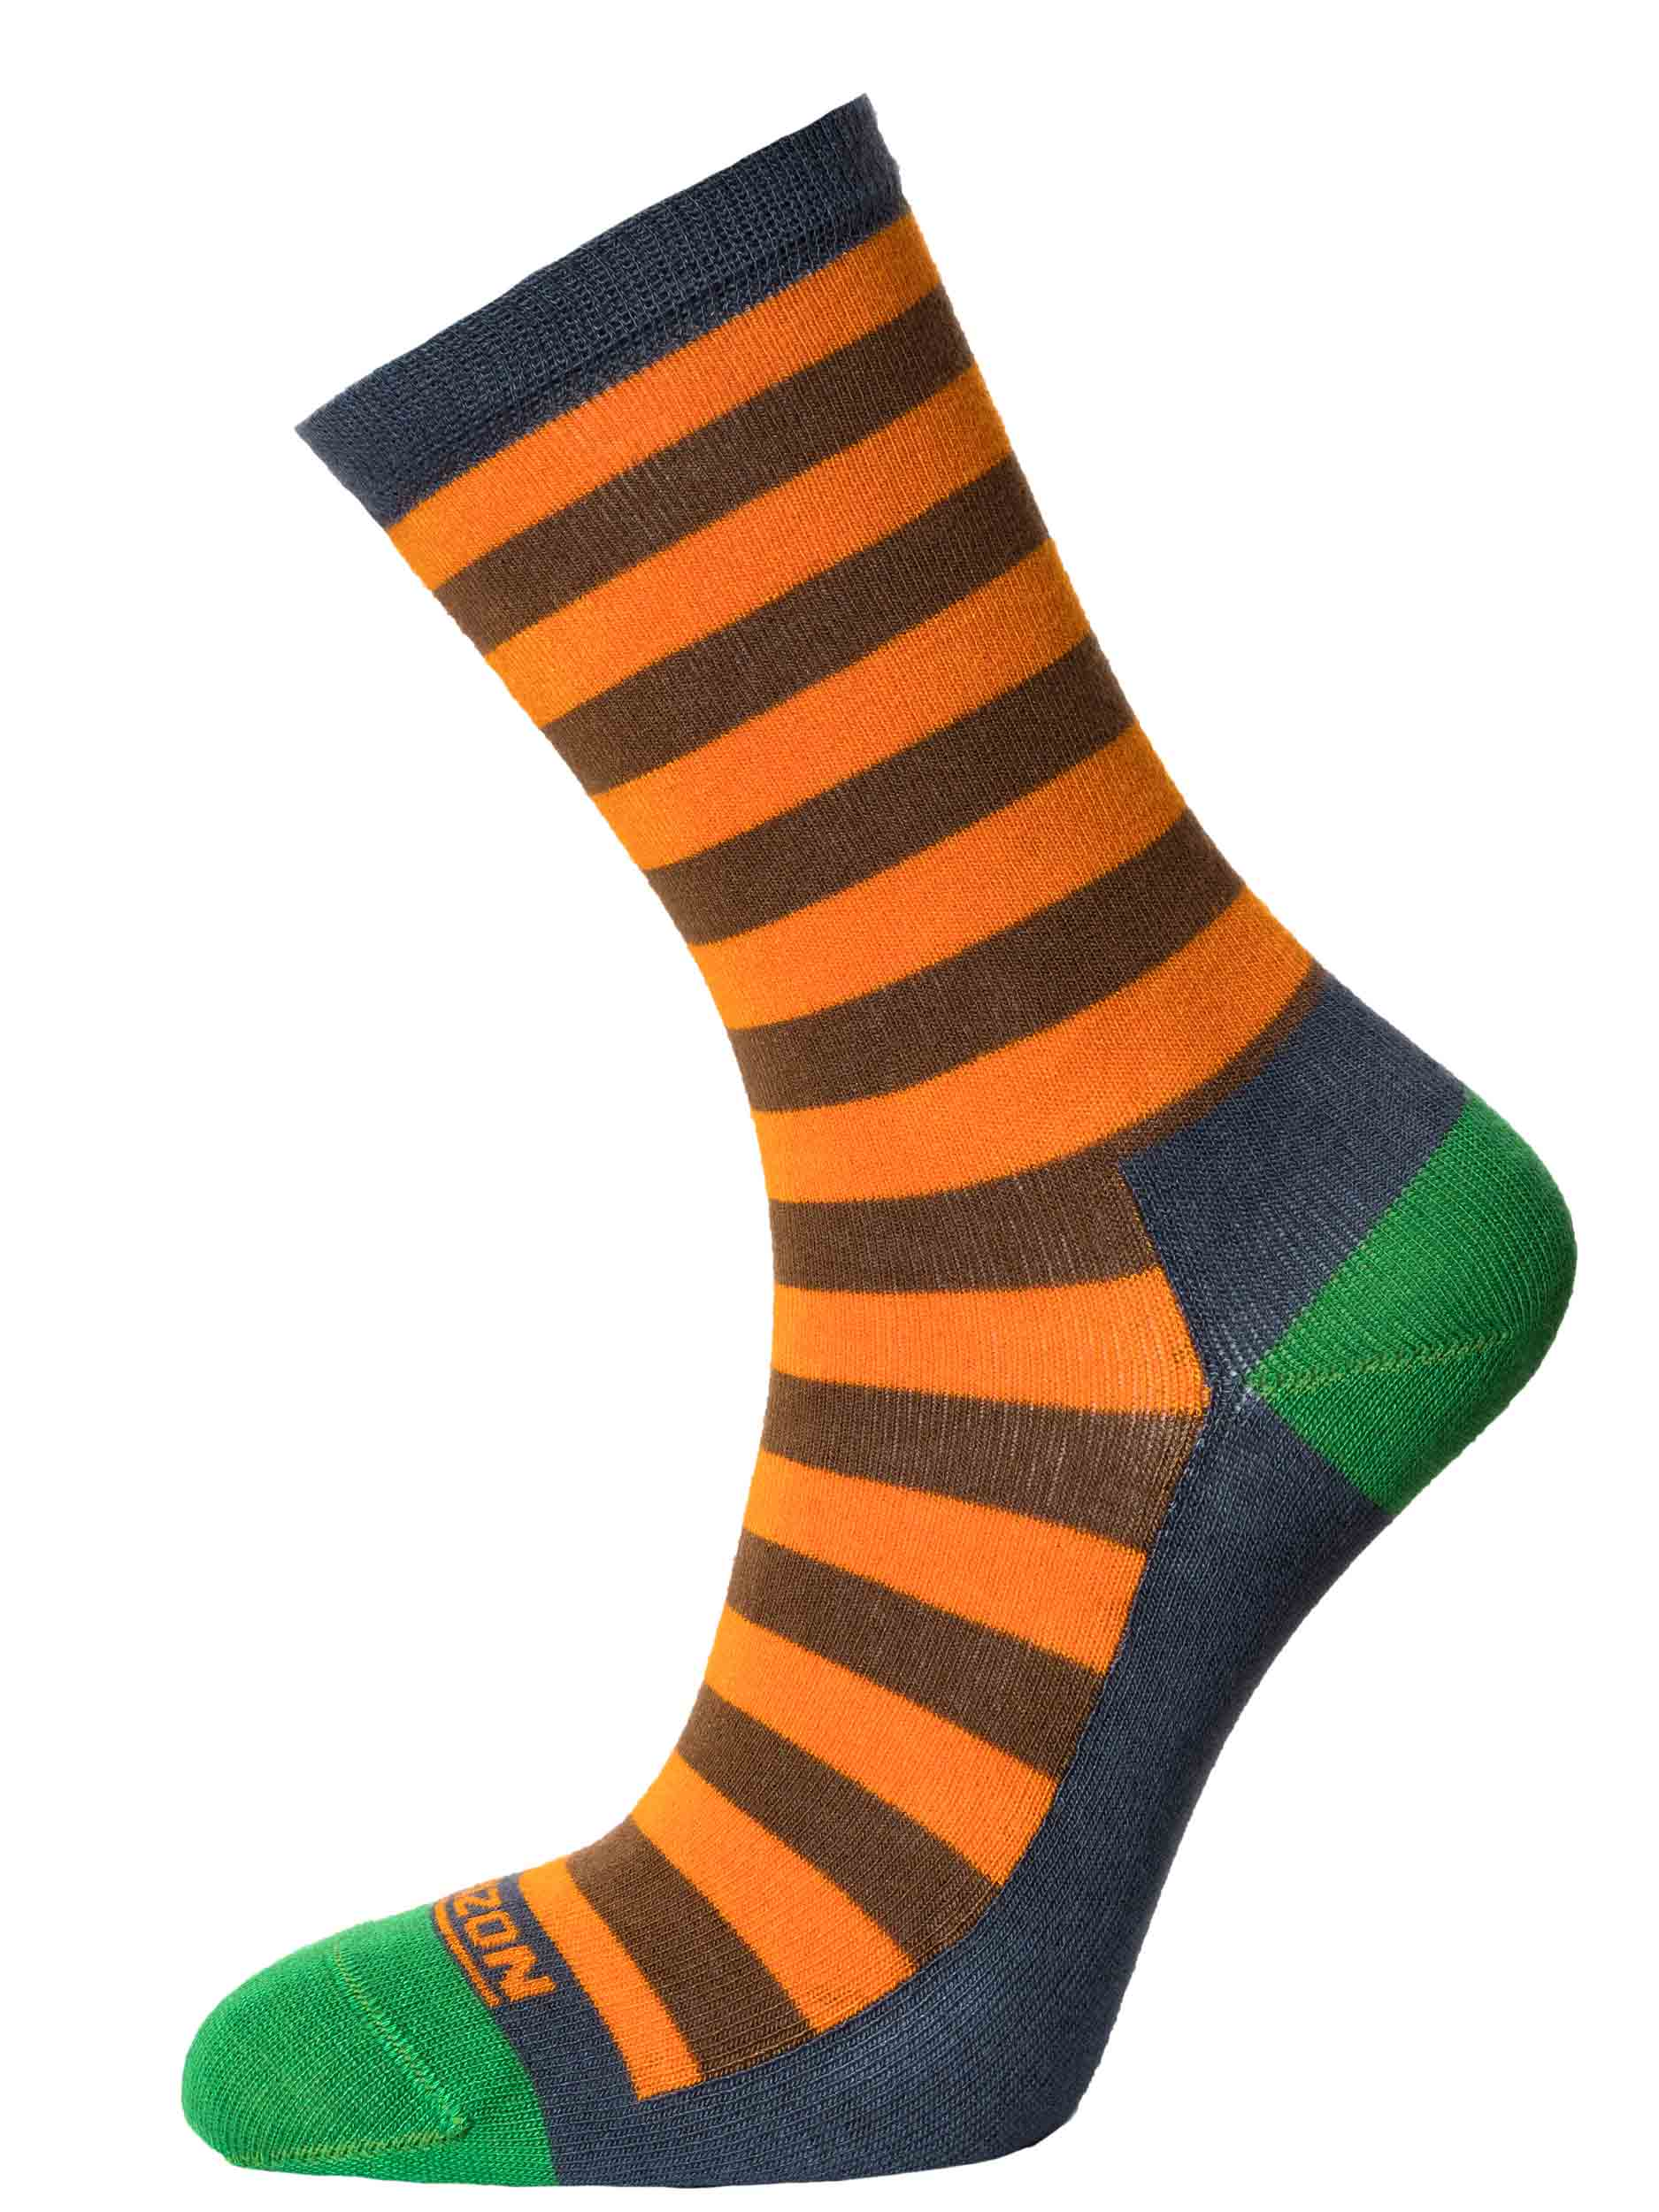 Leisure Lifestyle Womens Bamboo Sock Orange Green